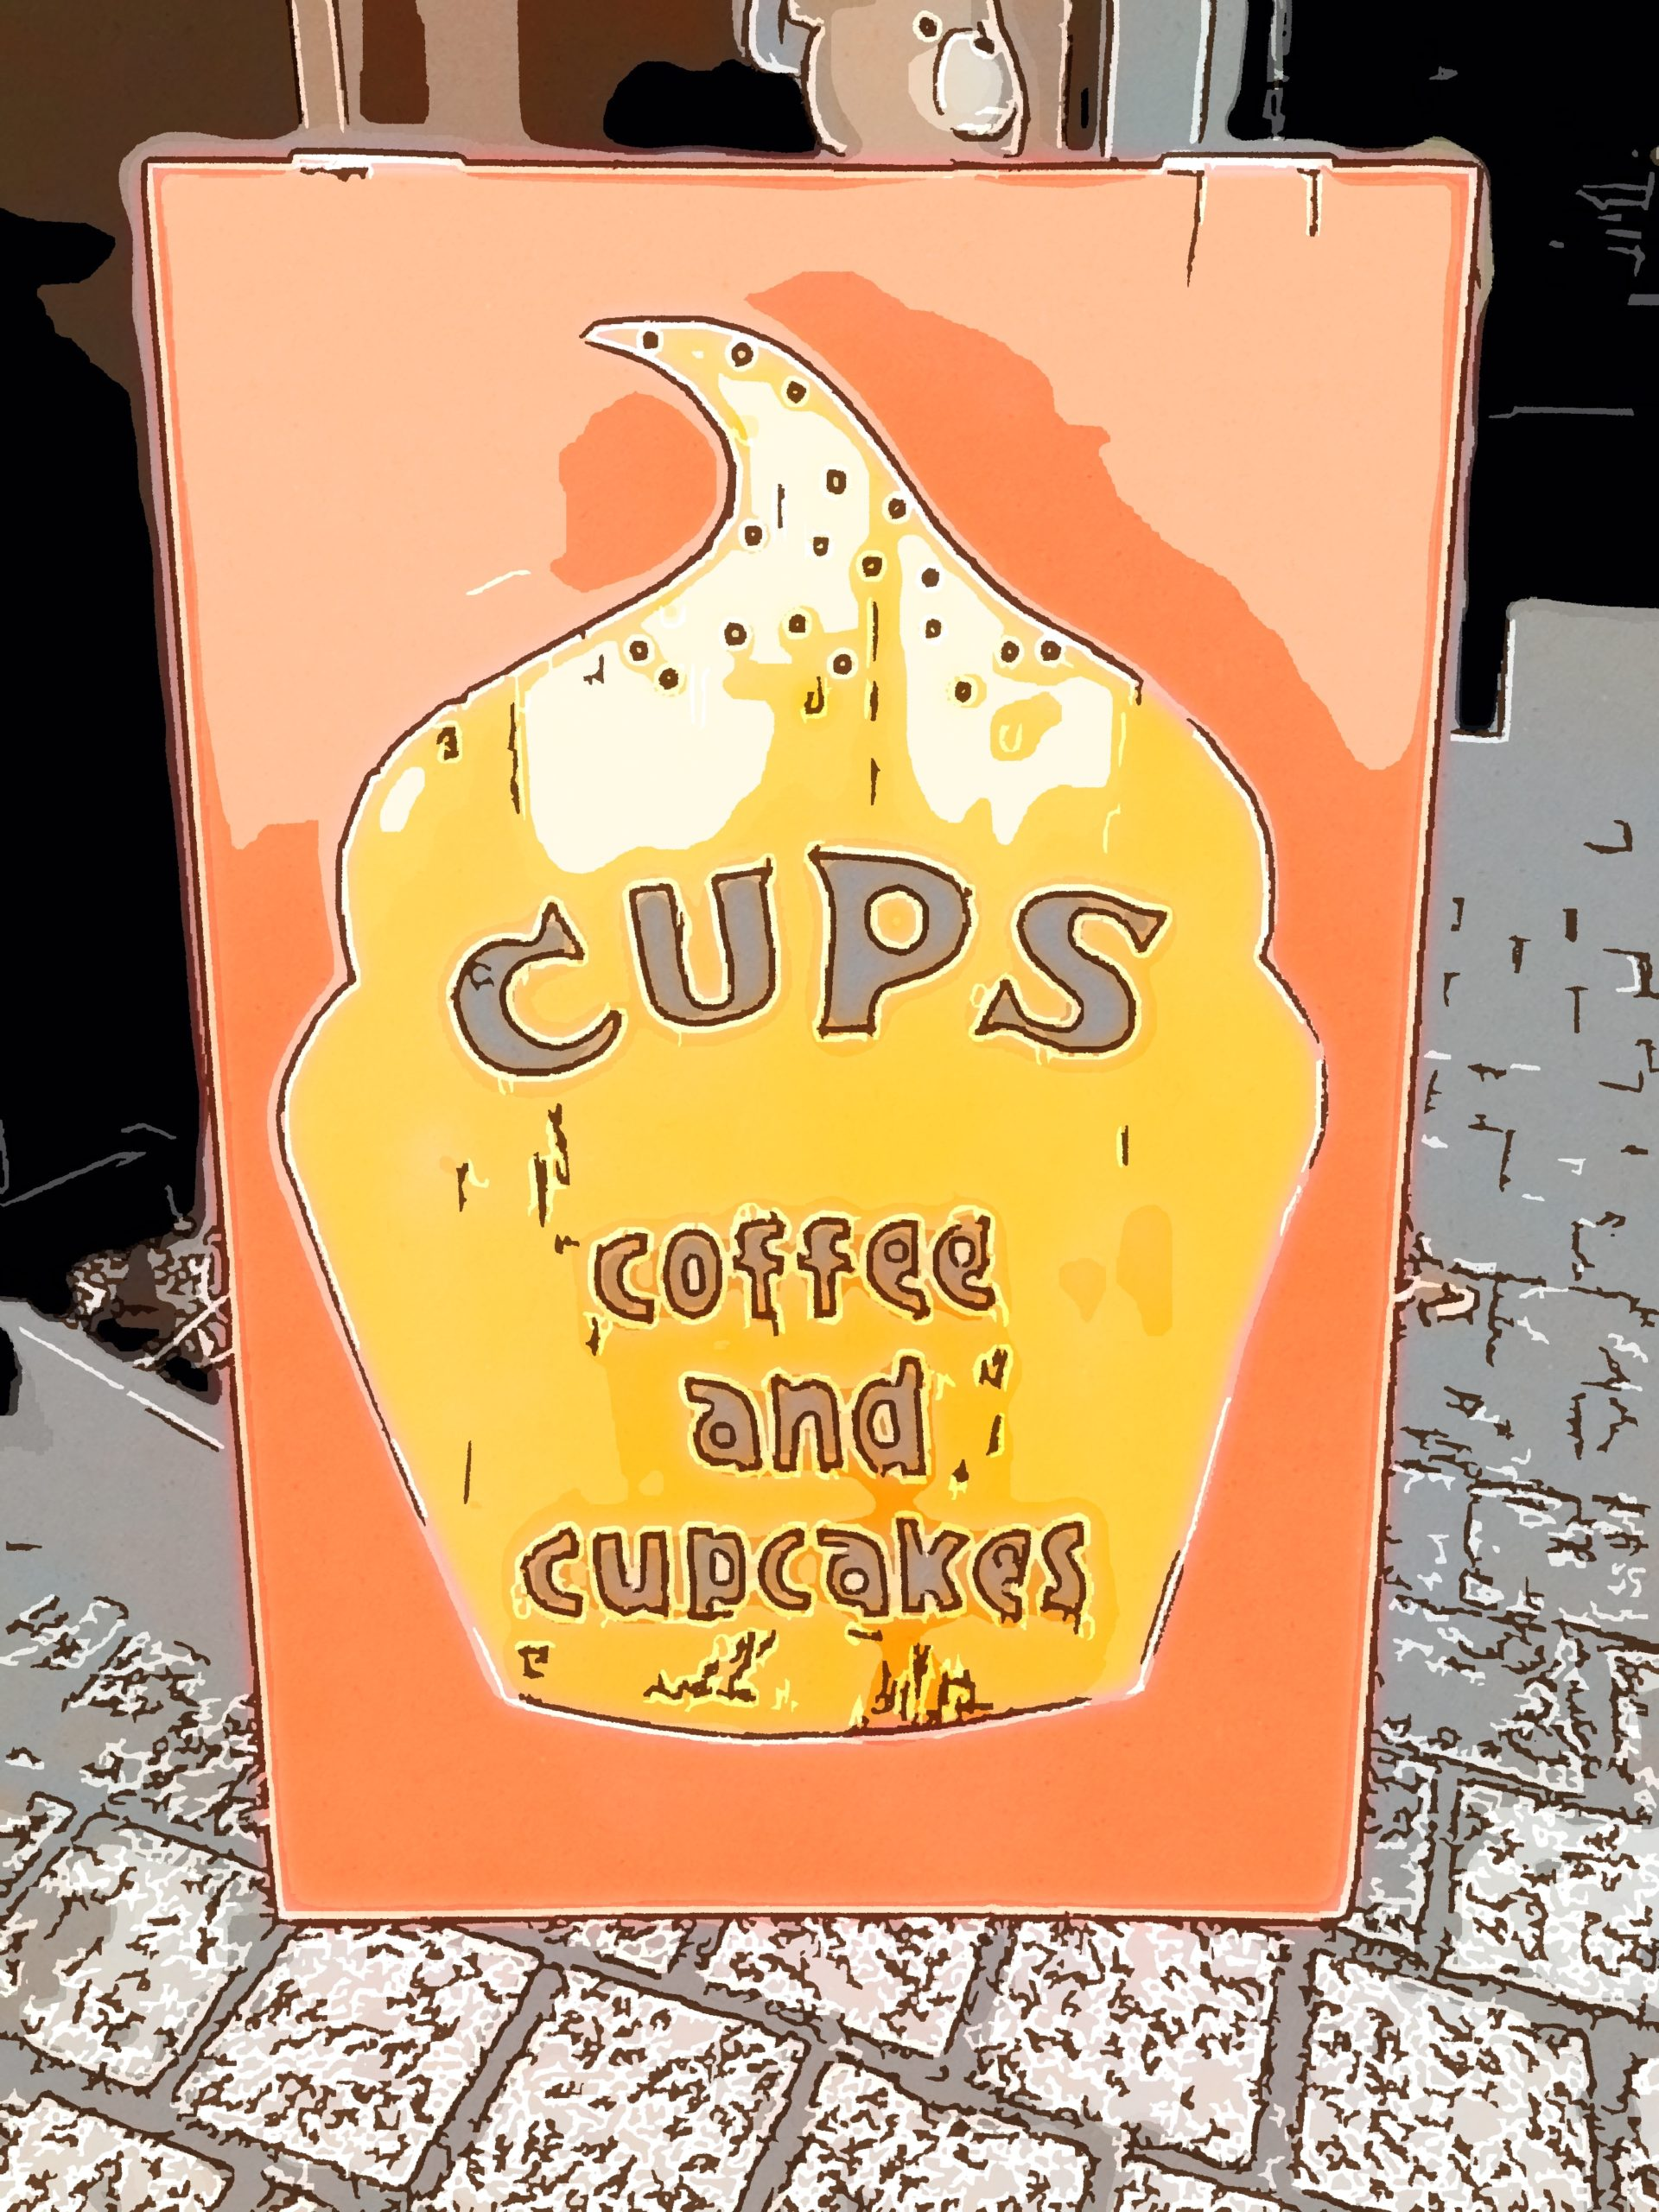 CUPS coffee & cupcakes